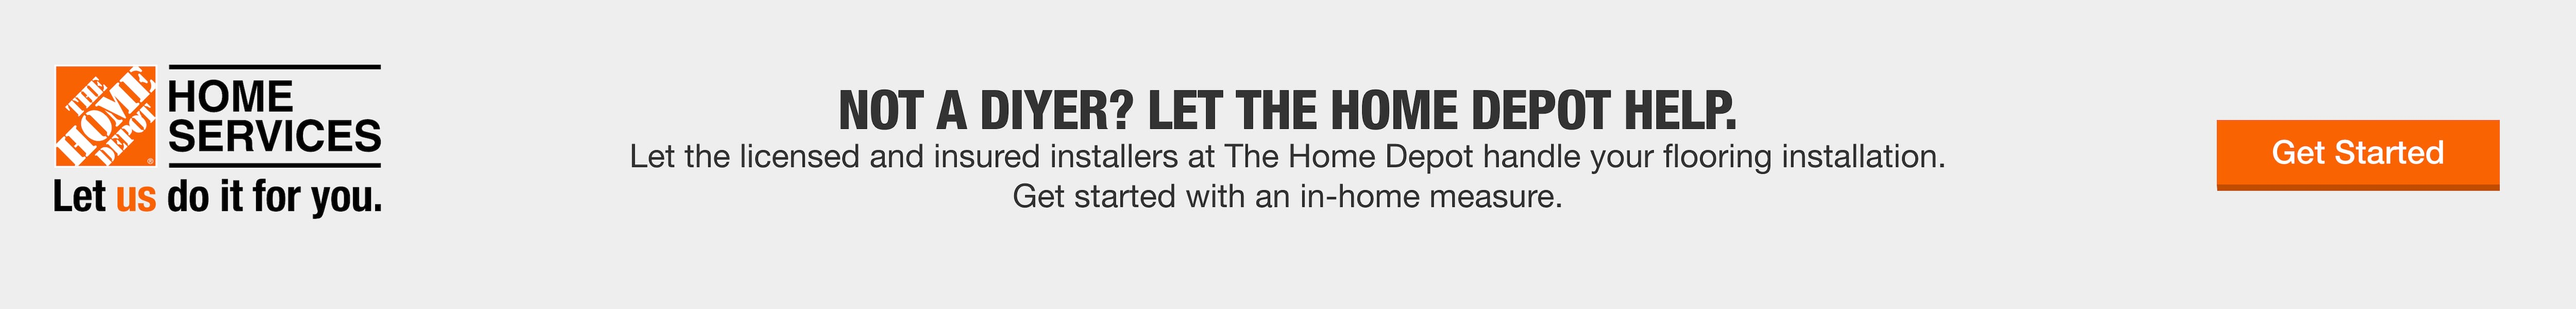 NOT A DIYER? LET THE HOME DEPOT HELP.